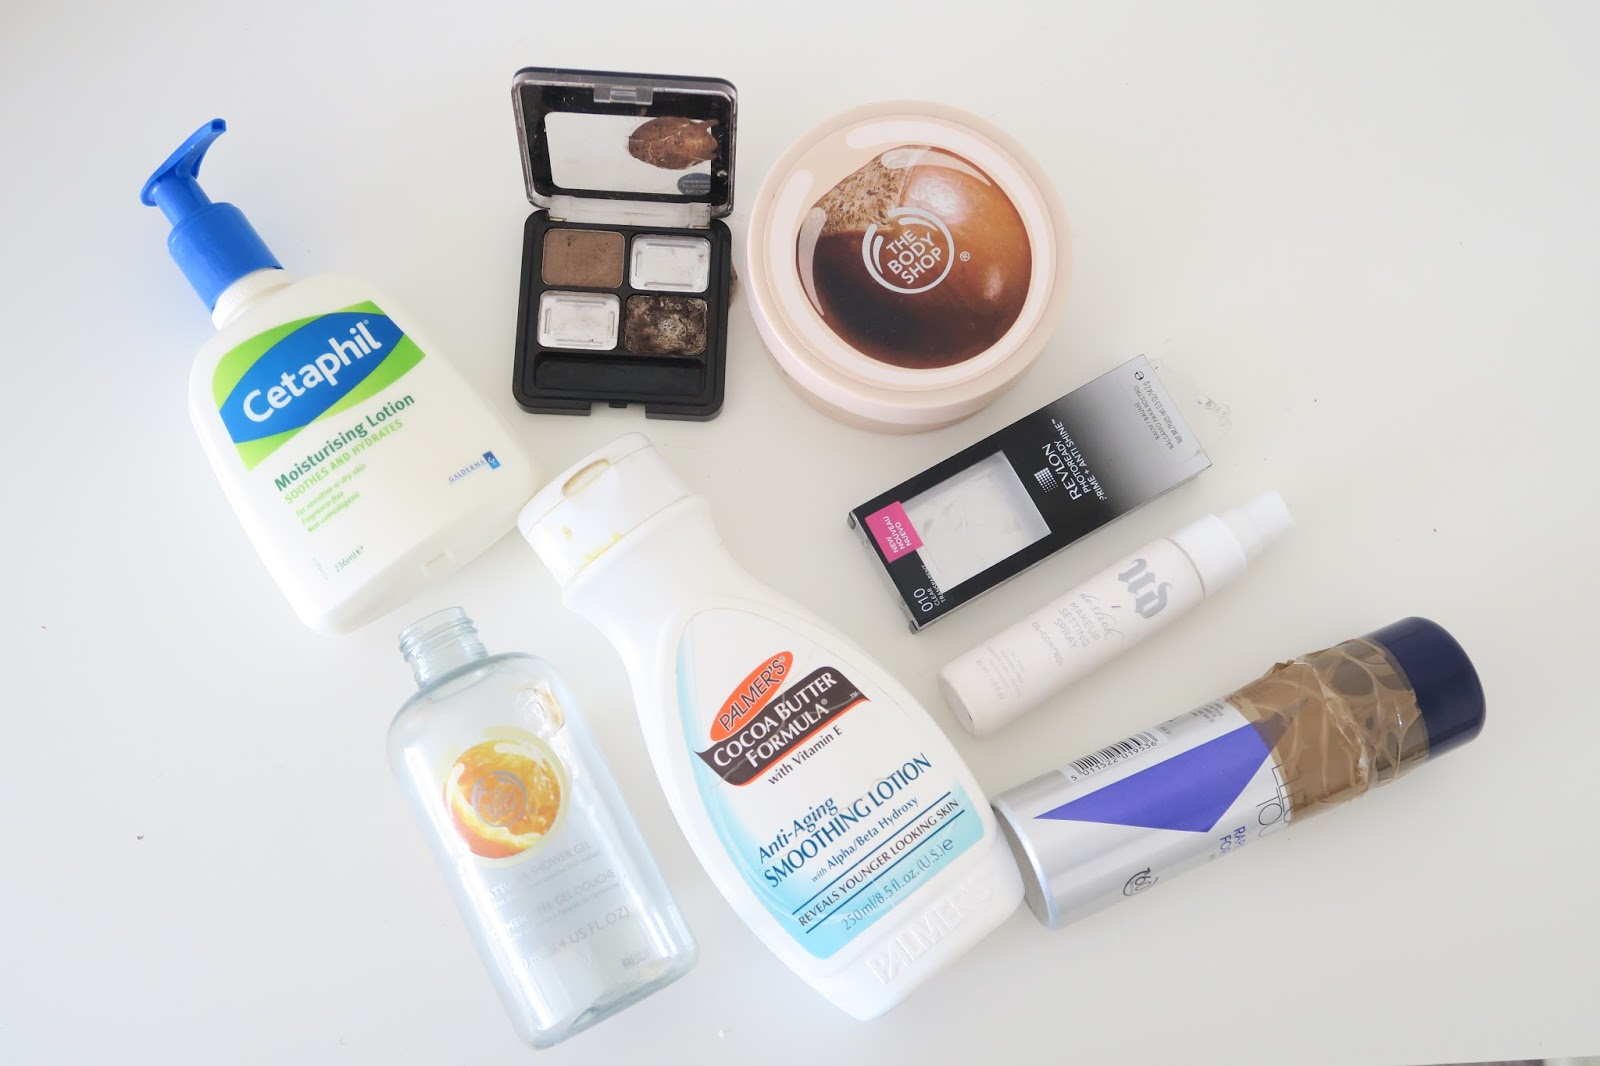 summer empties, product empties, Beauty Blog Photography, Blog Photography Tips, Blogger Photography Tips, canon g7x, Photography Tips, My Tips for Better Blog Photo